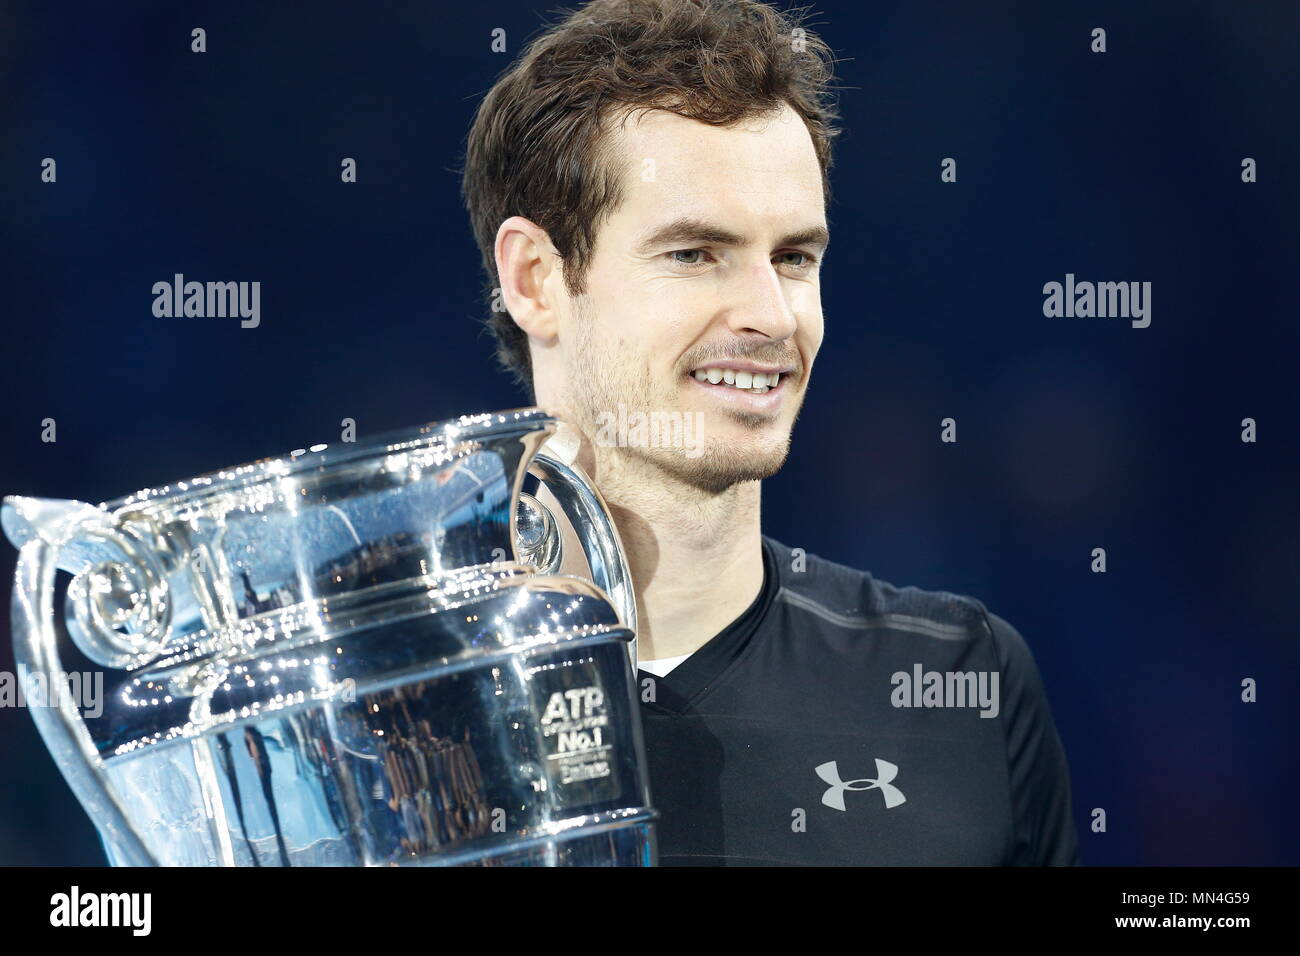 LONDON, ENGLAND - NOVEMBER 20: Andy Murray of Great Britain celebrates with the ATP Tour Trophy after winning the singles tournament against Novak Djokovic of Serbia on Finals day eight of the ATP World Tour Finals at the O2 Arena on November 20, 2016 in London, England. - Stock Image